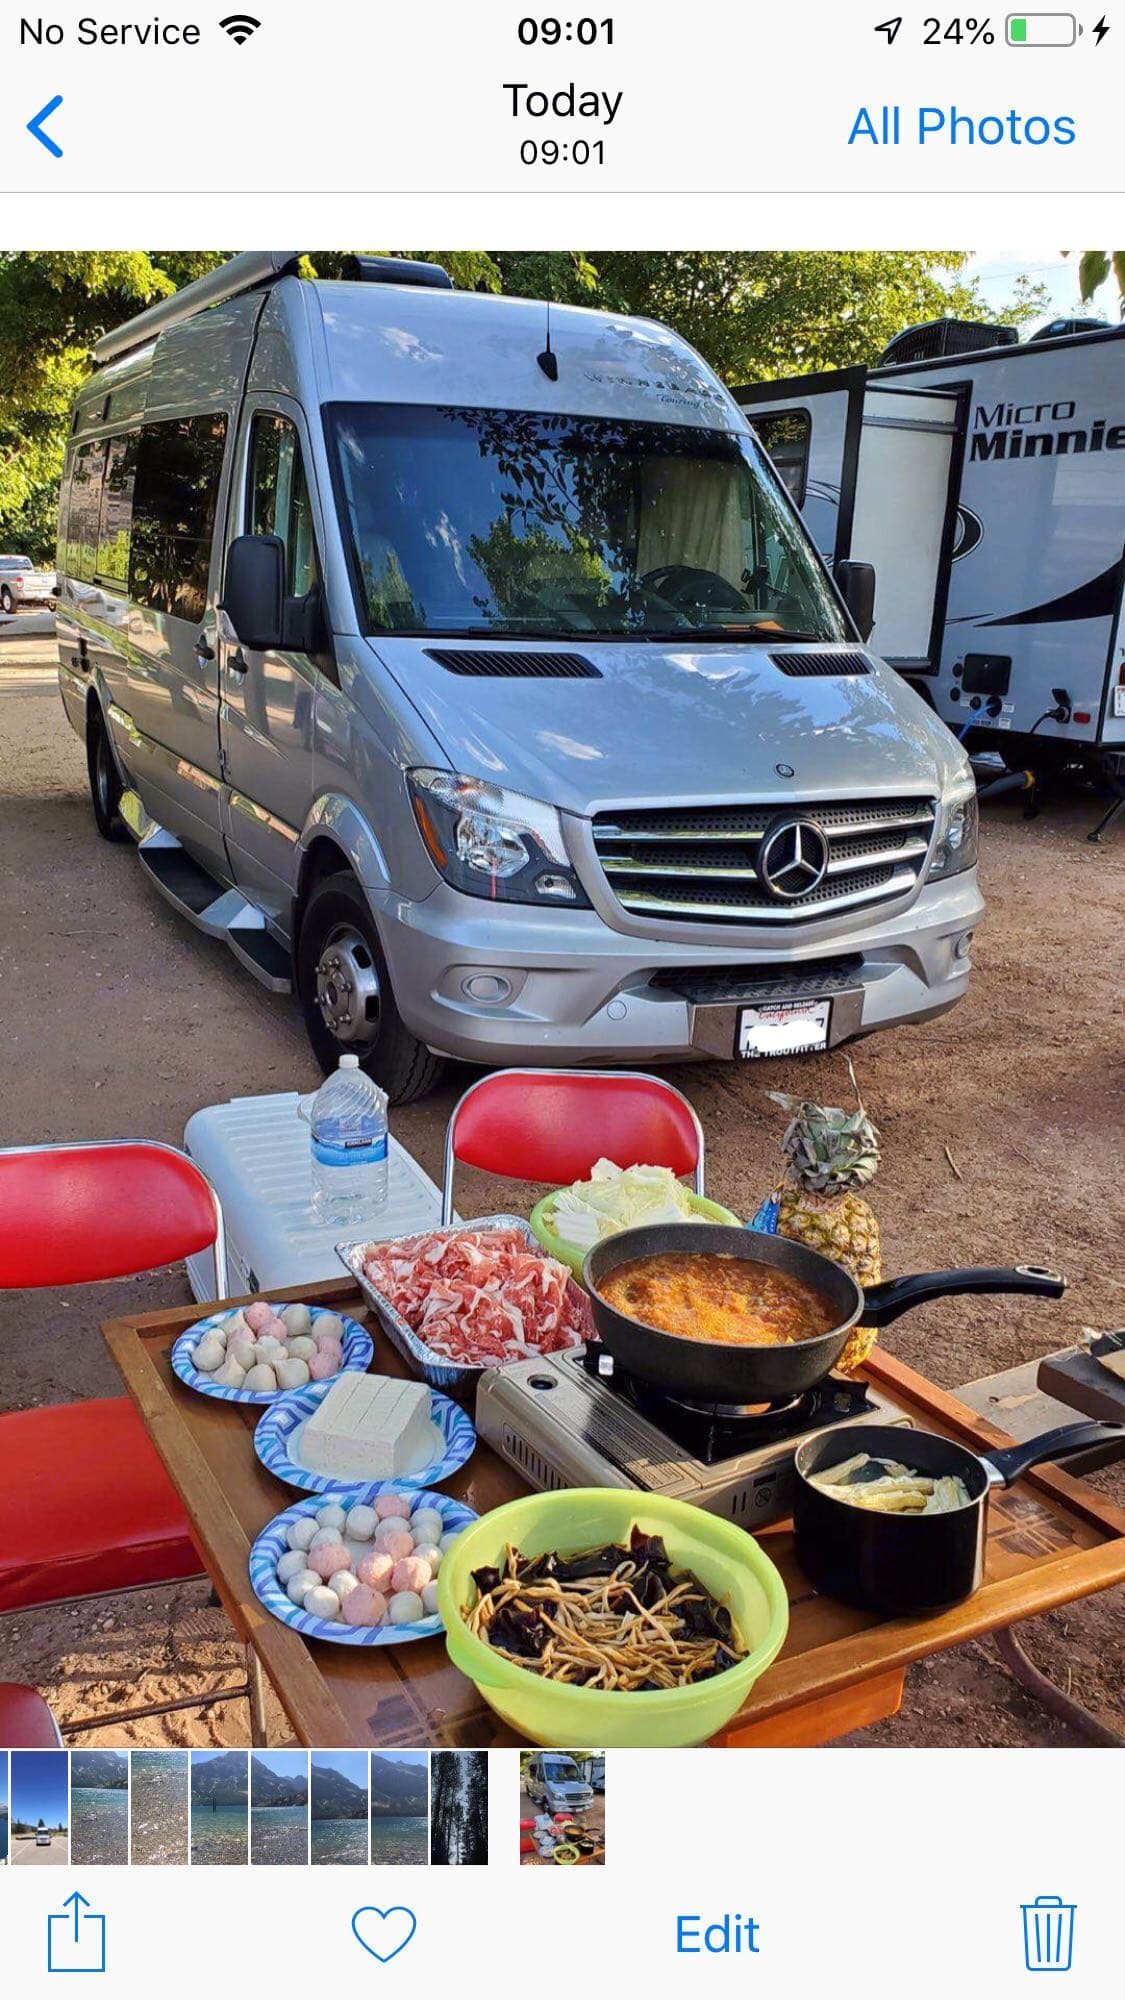 Zion national park (Renter's photo , red chair & table & delicious food not included). Mercedes Benz Winnebago Era 2015